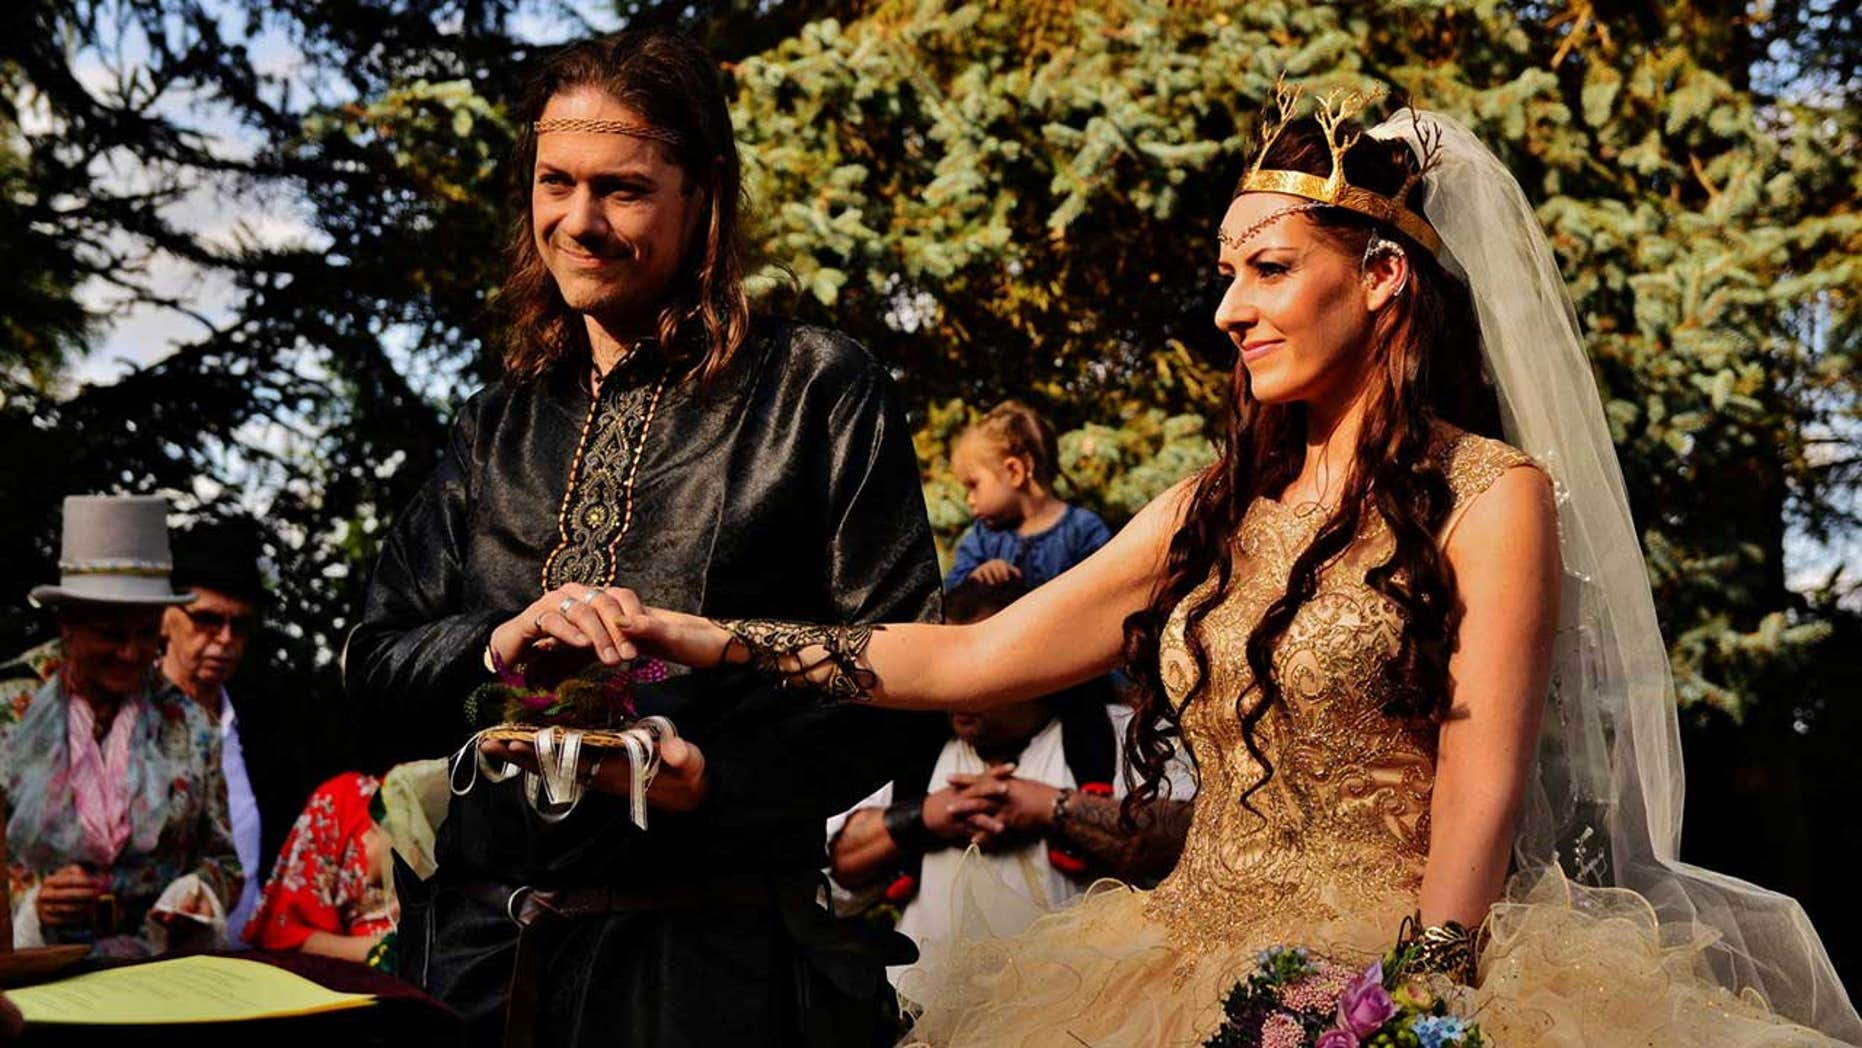 Isabell Etz and Ferenc Mansen, from Solna, Sweden, first met at Oct. 2014 and bonded over a shared love of all-things fantasy.